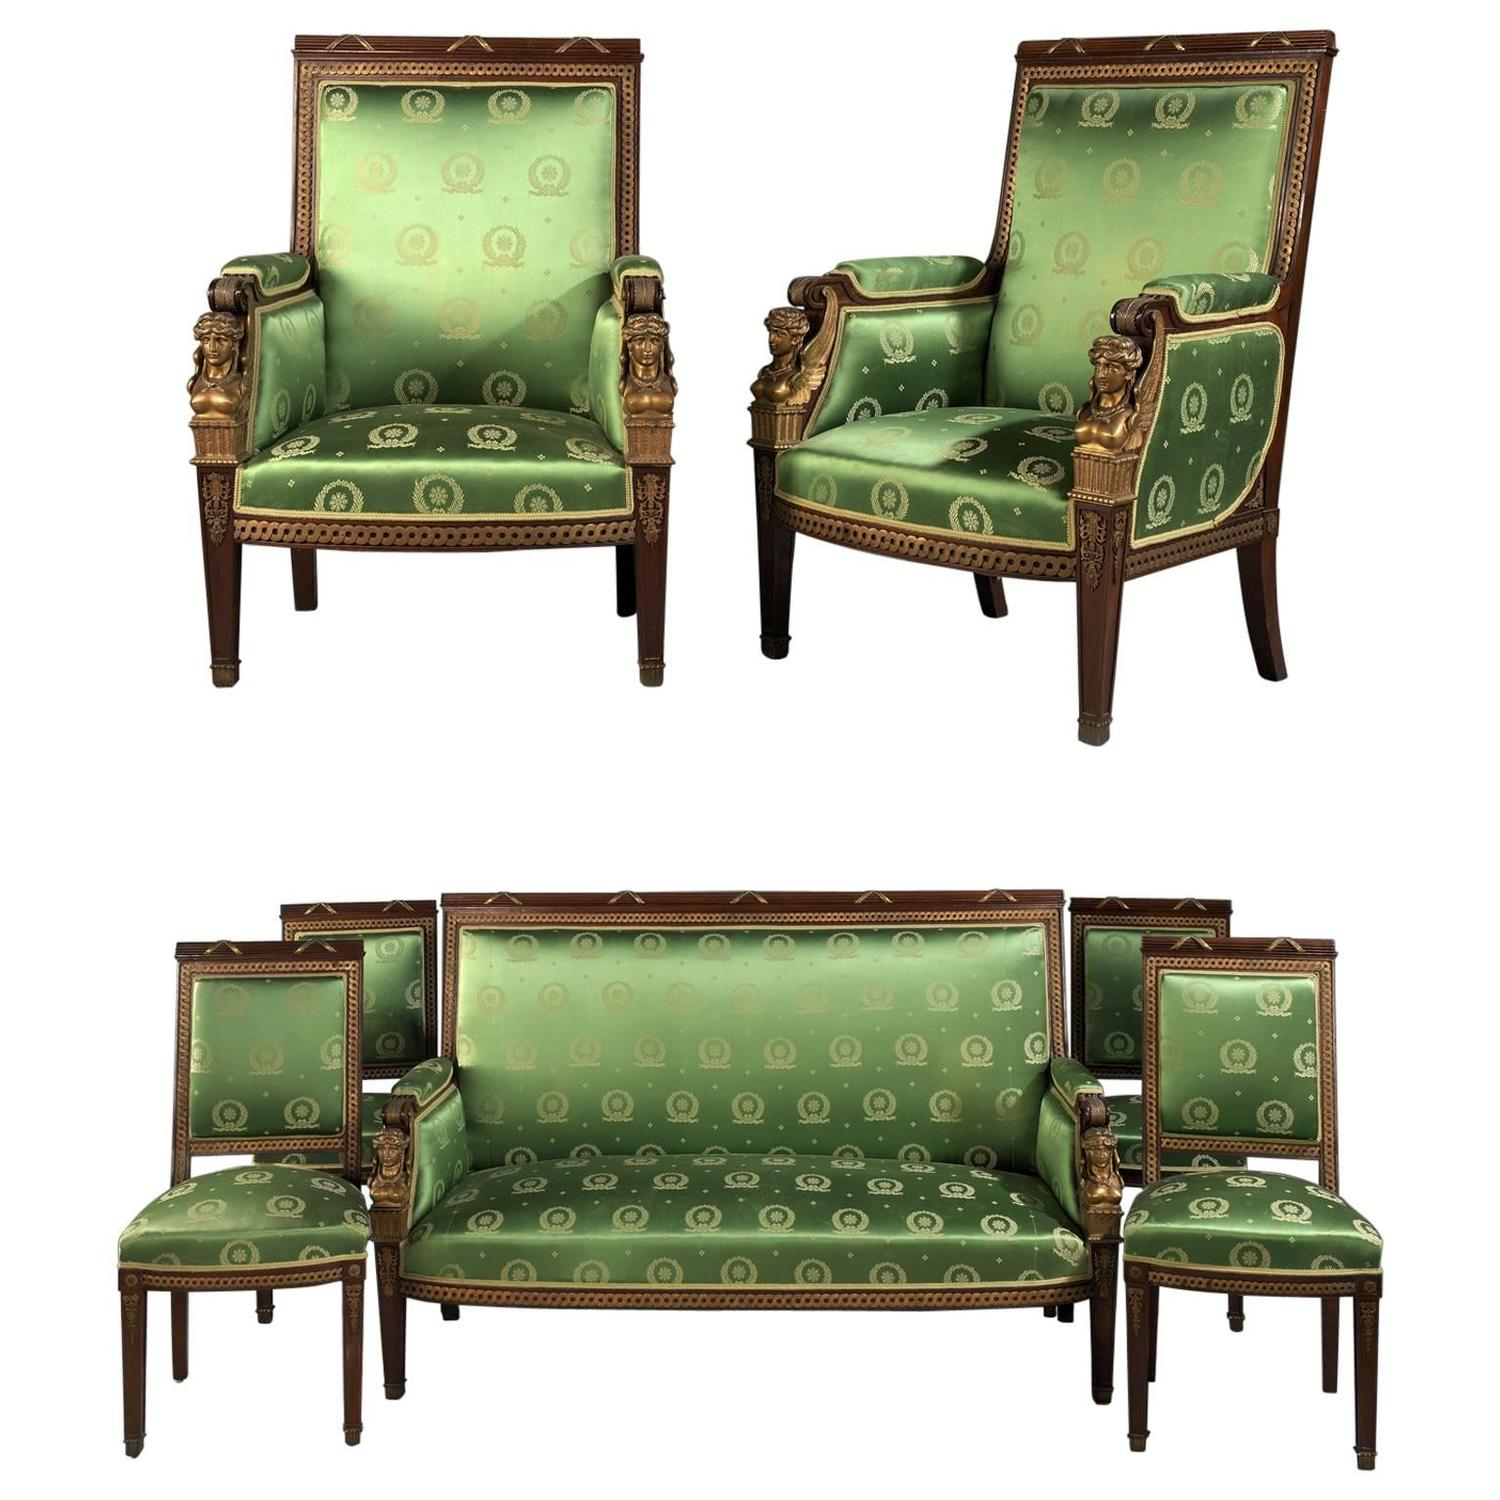 7 Piece Second Empire Salon Suite, French, Circa 1880 For Sale At 1stdibs